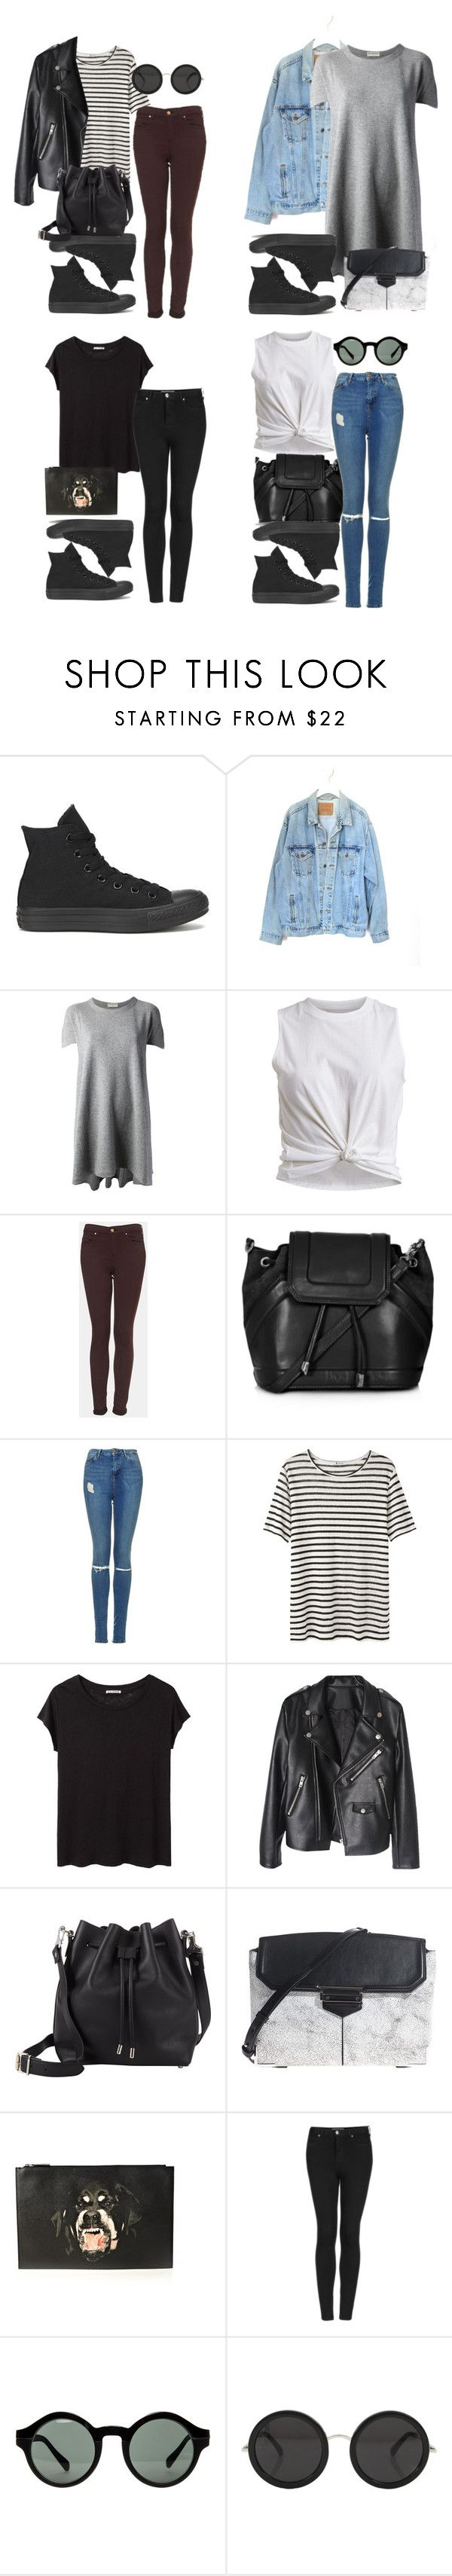 """outfits with all black converse"" by style-by-gabriella on Polyvore featuring Converse, Levi's, Balenciaga, VILA, Topshop, T By Alexander Wang, Acne Studios, Proenza Schouler, Alexander Wang and Givenchy"